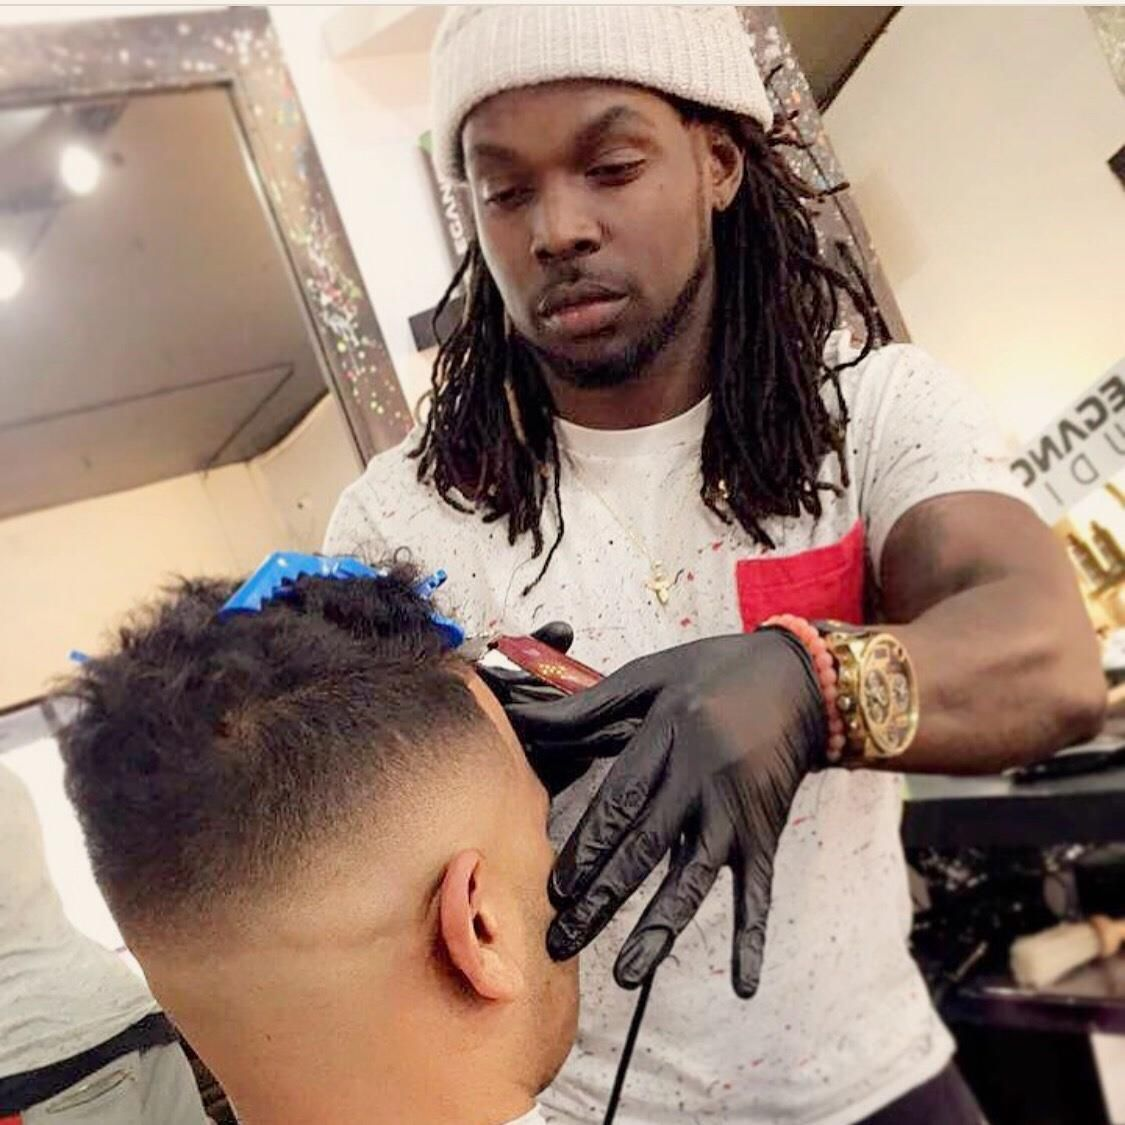 Stylish haircuts for young men haircut design facial hair  get anything you want to fit your